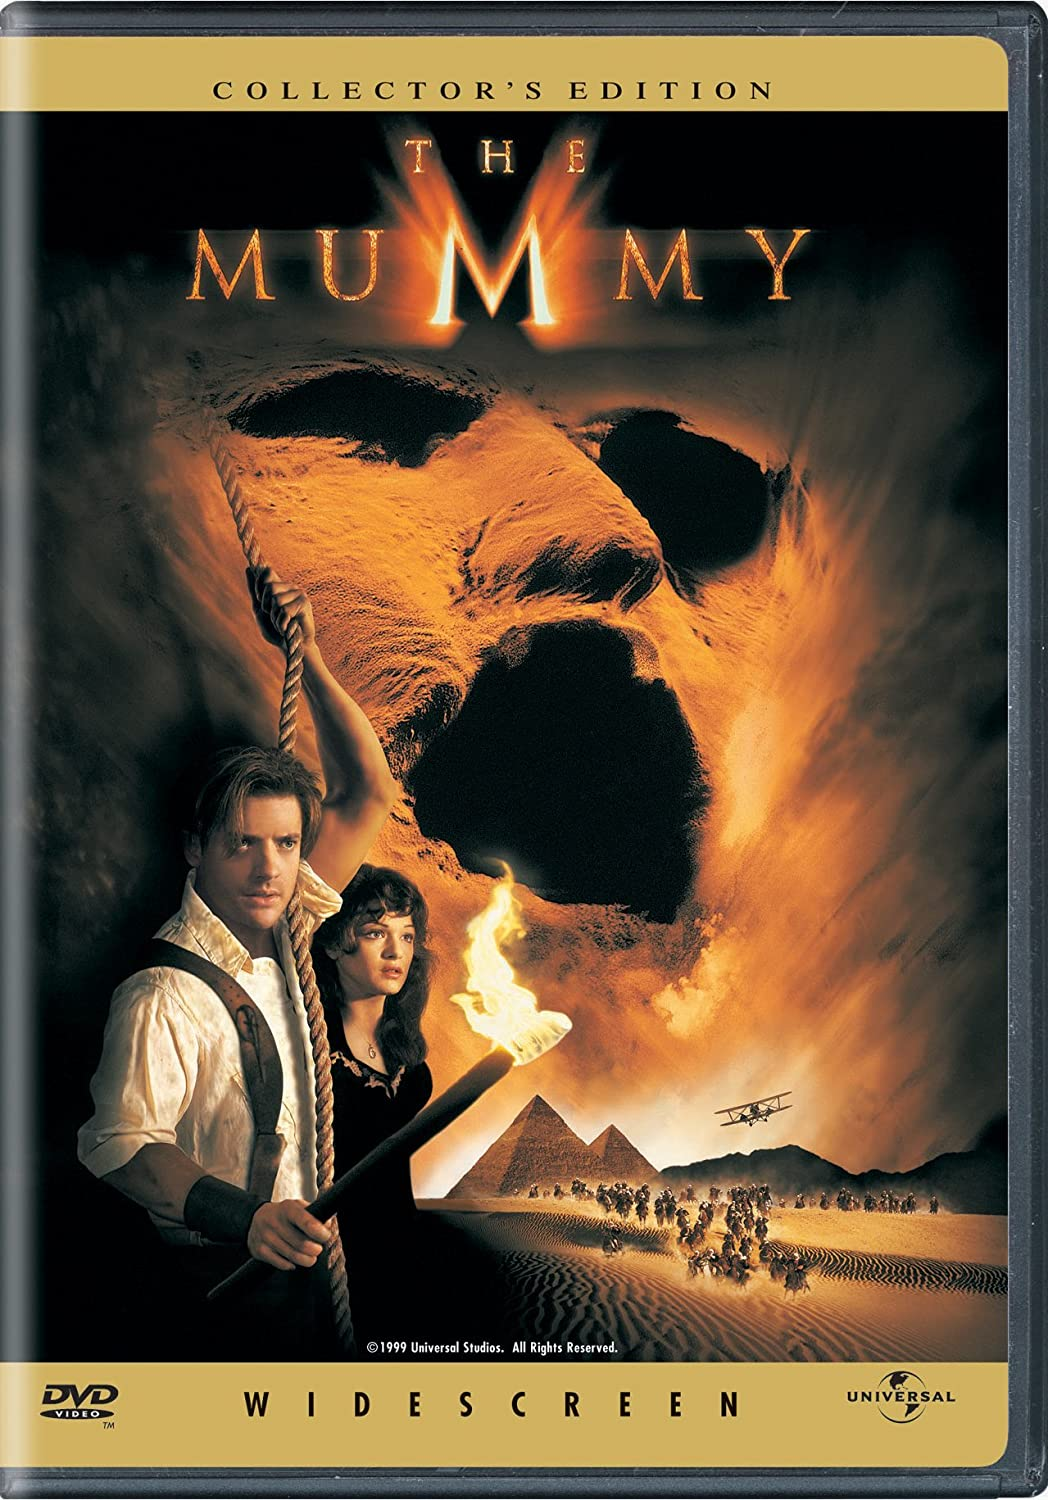 Amazon Com The Mummy Widescreen Collector S Edition Brendan Fraser Rachel Weisz Arnold Vosloo John Hannah Kevin J O Connor Jonathan Hyde Oded Fehr Erick Avari Patricia Velasquez Stephen Sommers James Jacks Sean Daniel Stephen